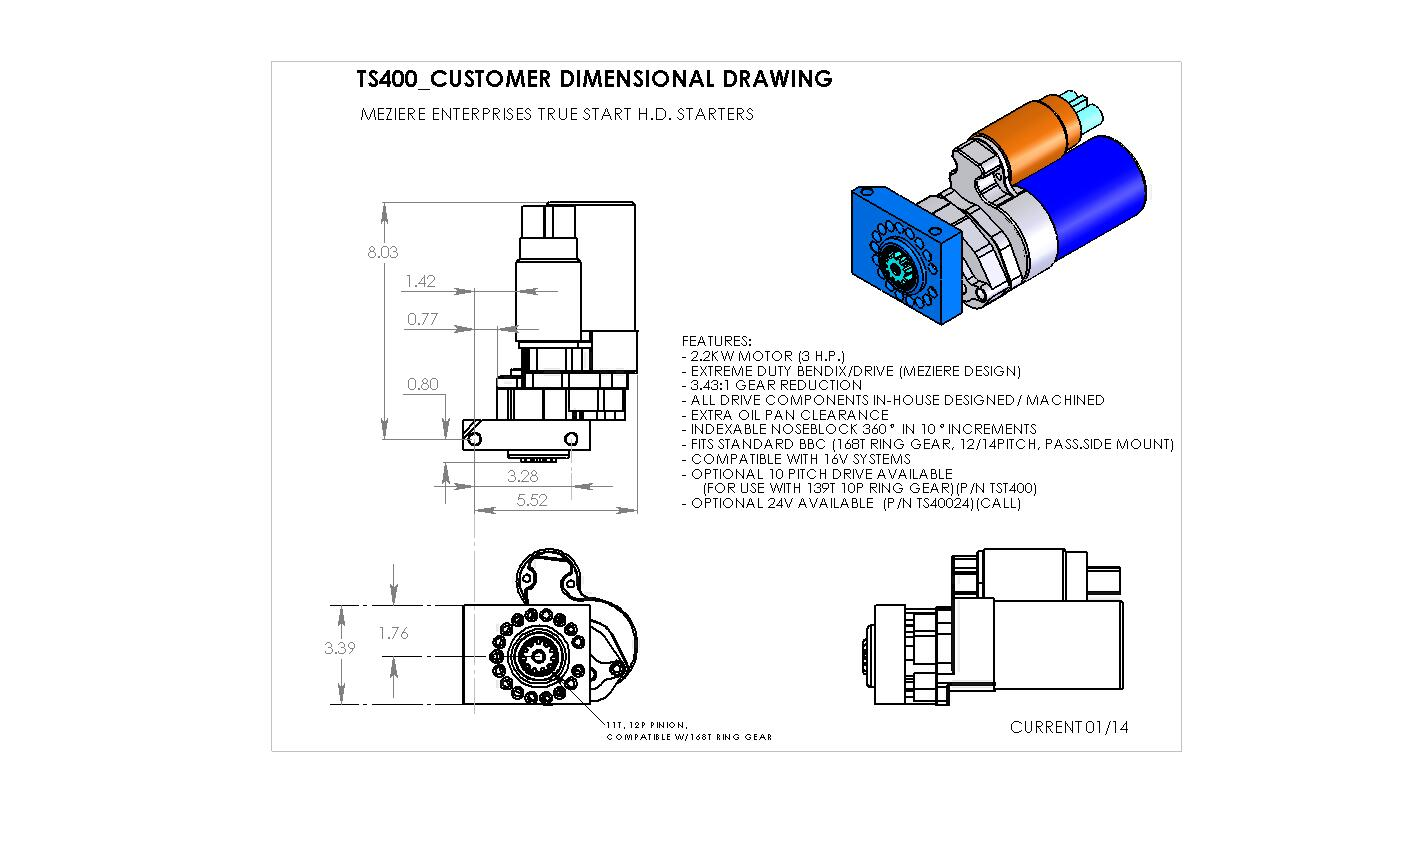 6g225 Ra Mp in addition Dodge Idler Pulley Diagram Html moreover Chrysler Pacifica Tcm Location as well Dodge Ram 1994 2001 Fuse Box Diagram 392736 additionally Dodge Stratus Electrical Diagrams. on 2003 dodge stratus fuse box diagram